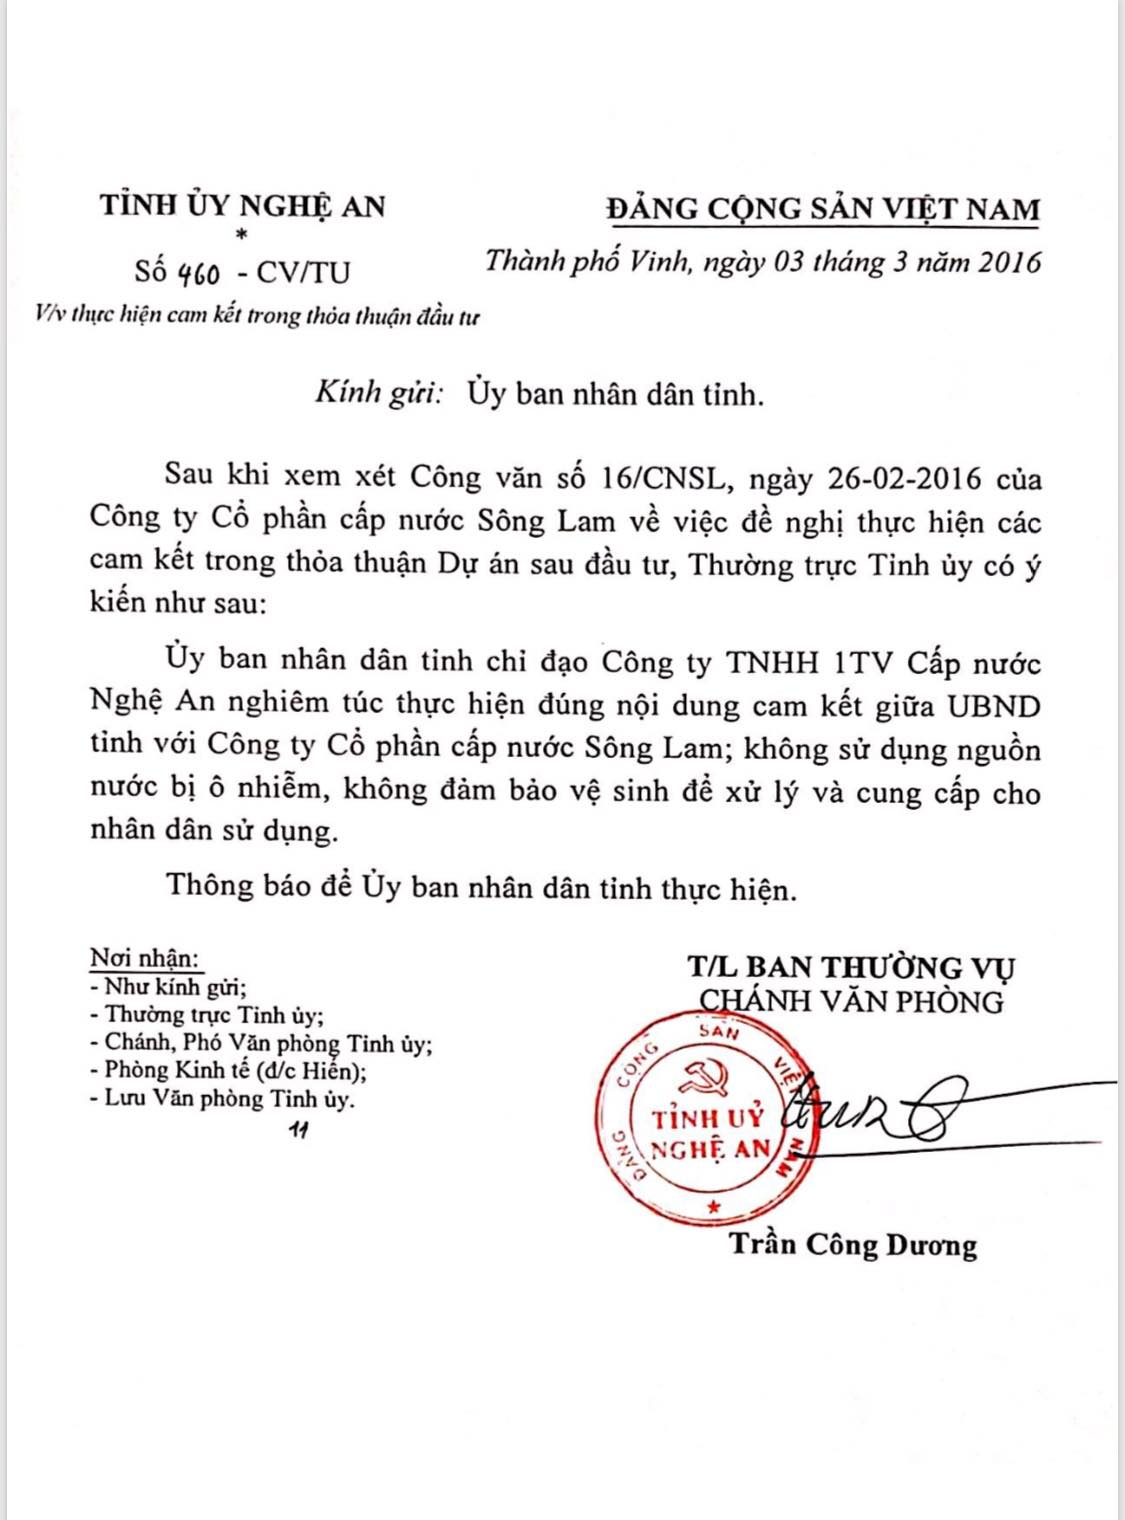 cong ty nuoc nghe an len lut hut nuoc tu song dao o nhiem? hinh anh 2